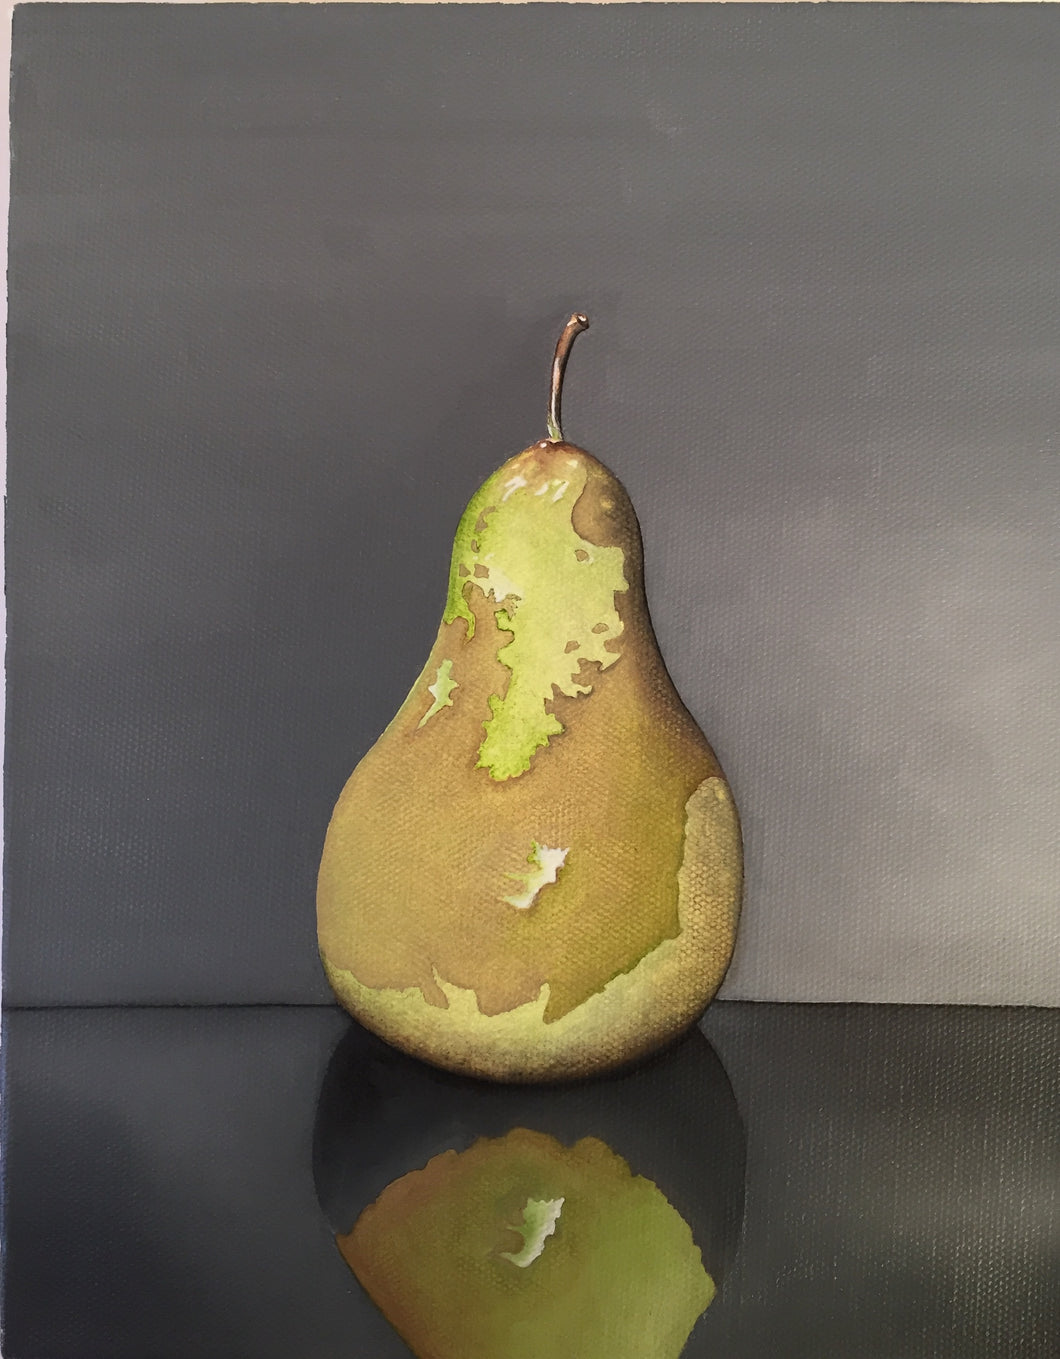 Mirrored Pear